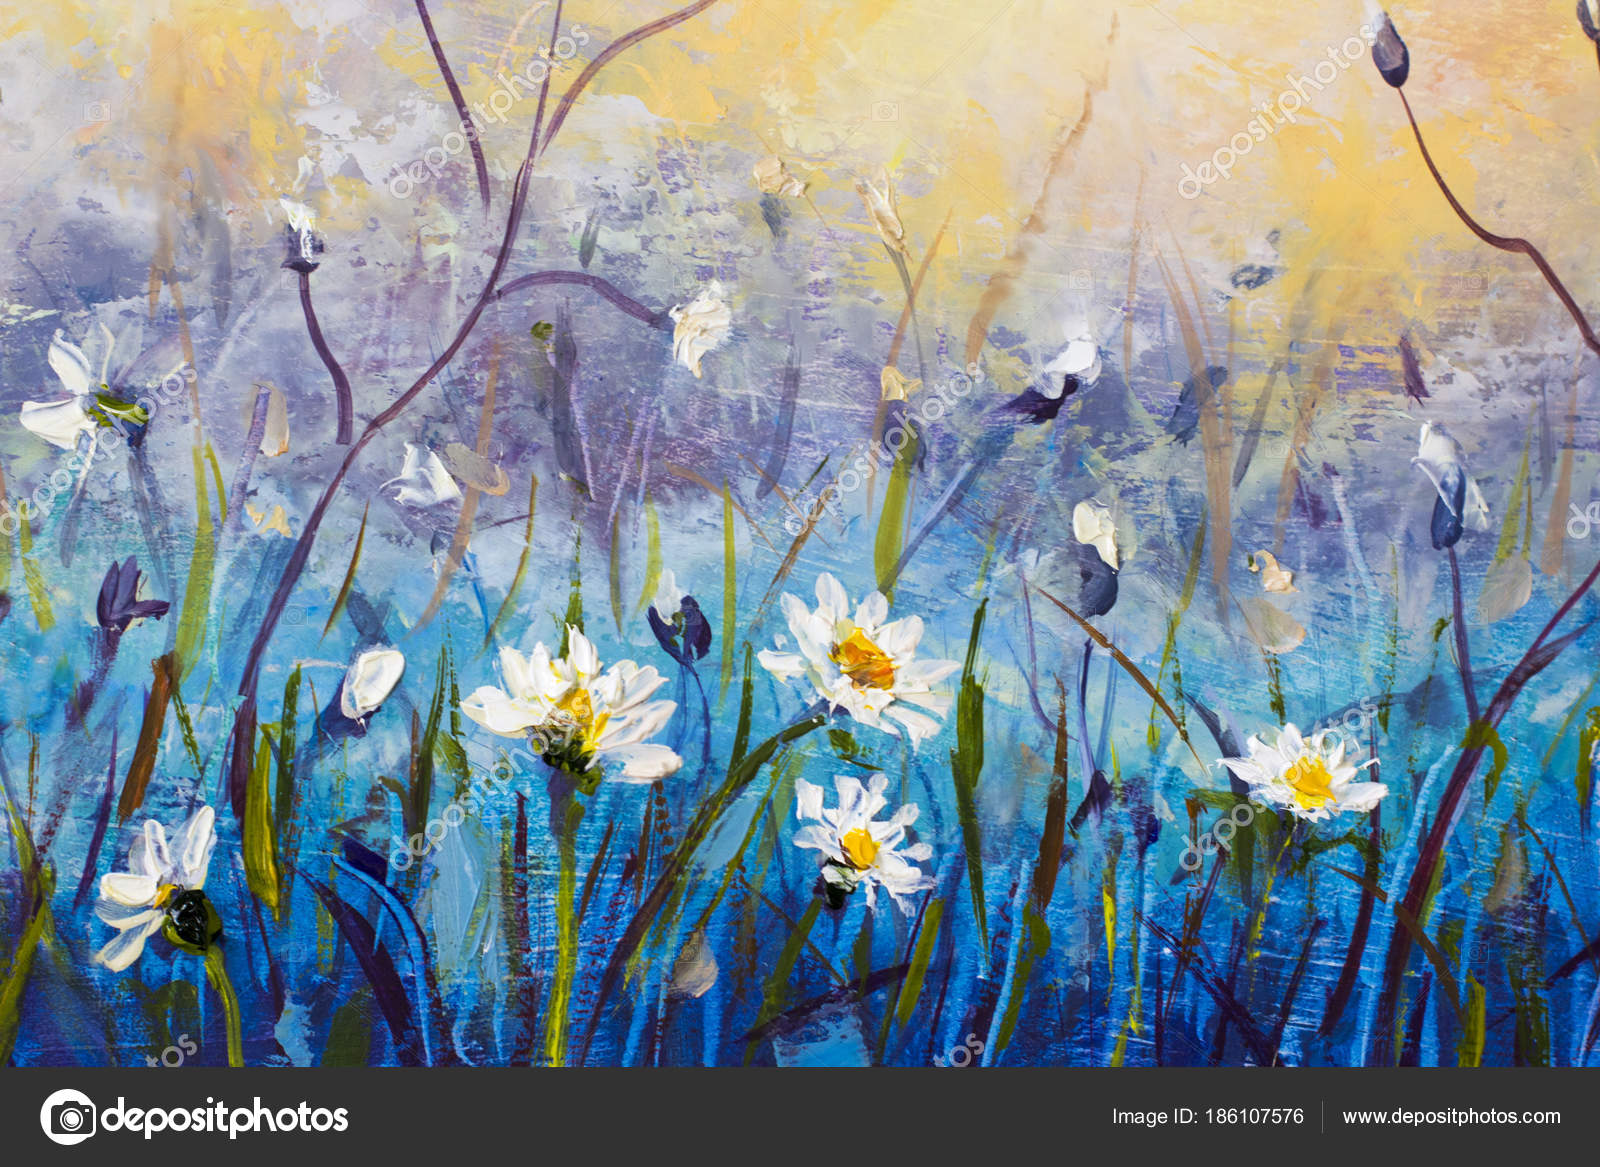 Original flowers oil painting wildflowers chamomile small white original flowers oil painting wildflowers chamomile small white flower blue stock photo mightylinksfo